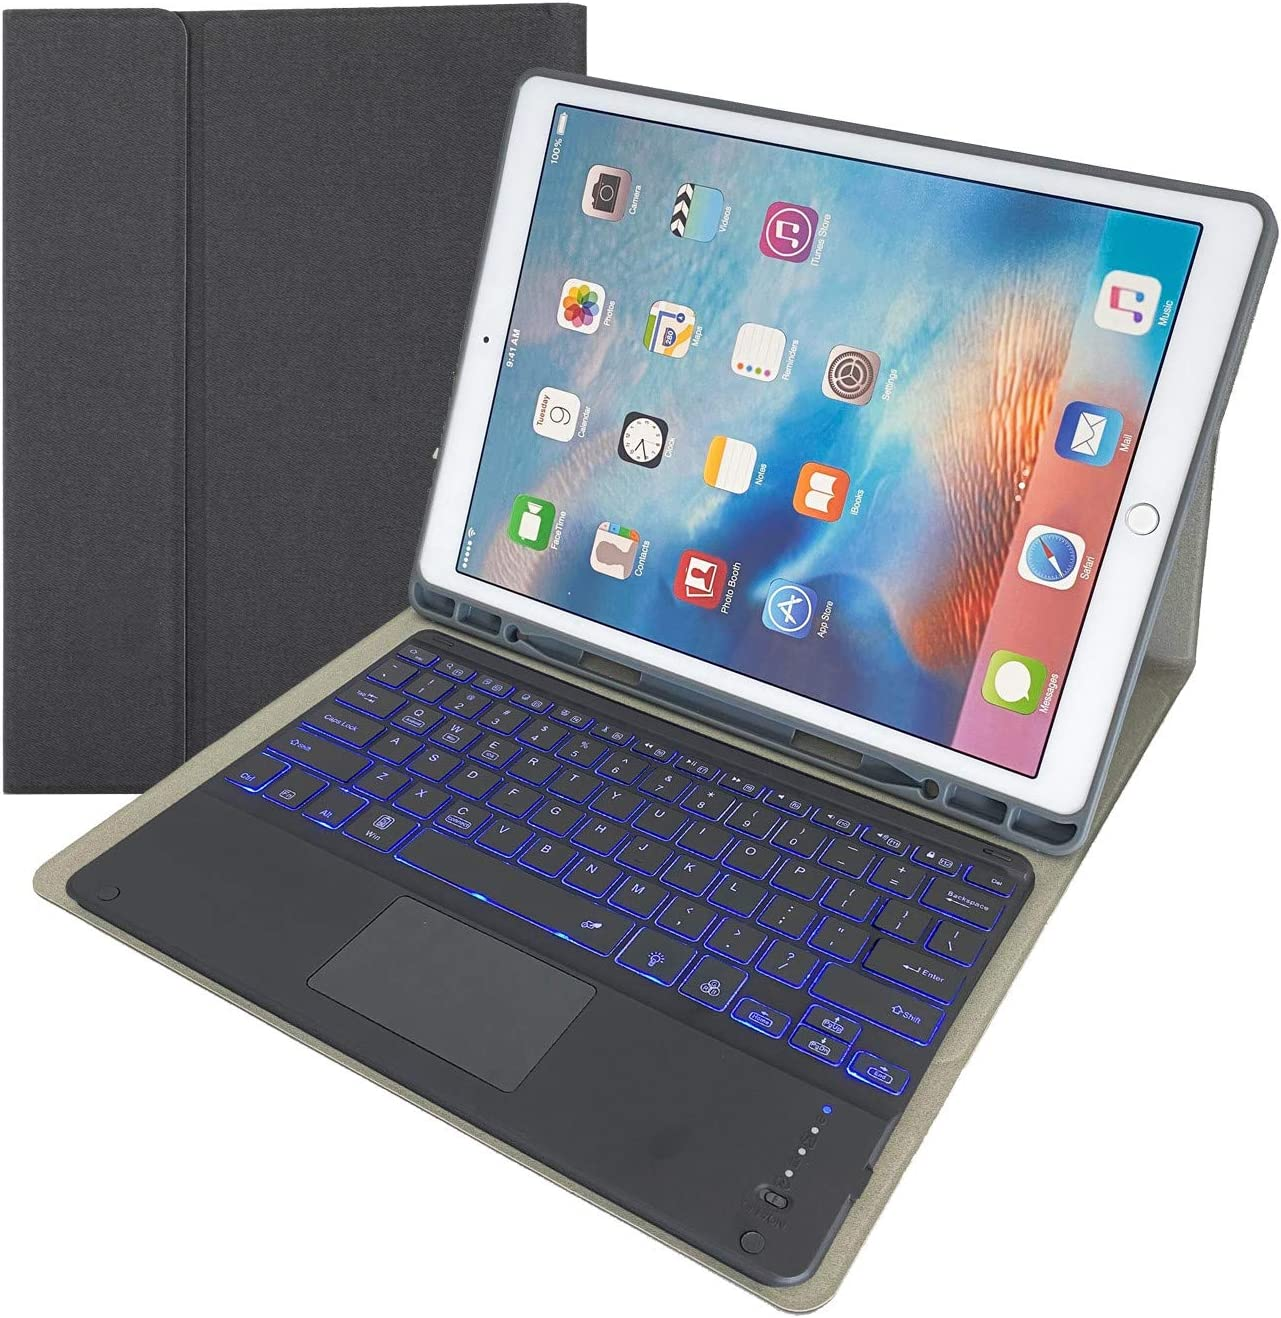 NB Keyboard Case (Touch Mouse Keyboard) for iPad Pro 12.9 (2015/2017), 7-Color Backlit Keyboard Cover with Pencil Holder for iPad Pro 12.9 (2015/2017)